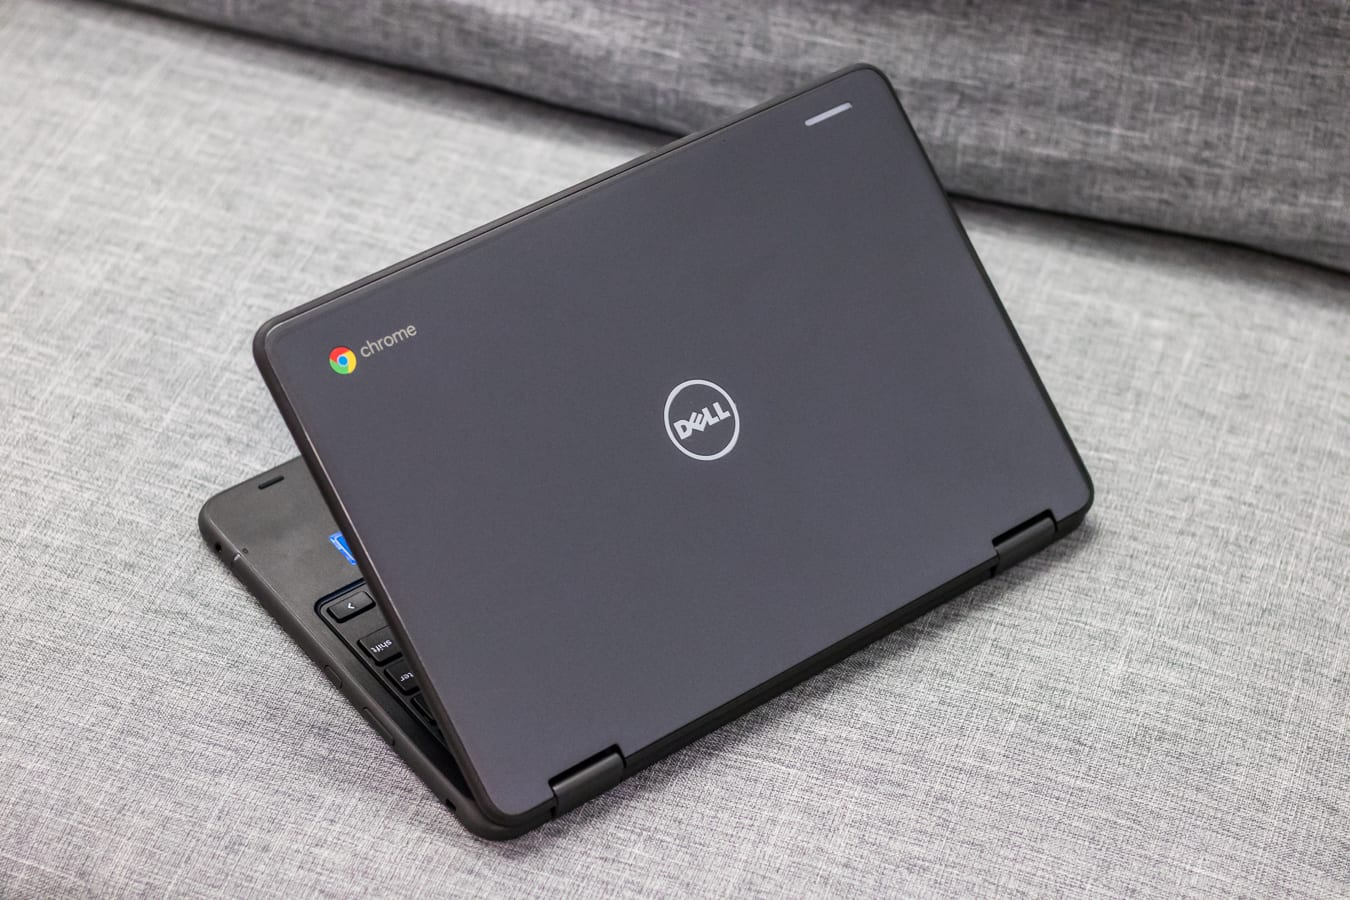 Dell Inspiron Chromebook 11 2-in-1 Review: Convertible Versatility for the  Budget-Minded